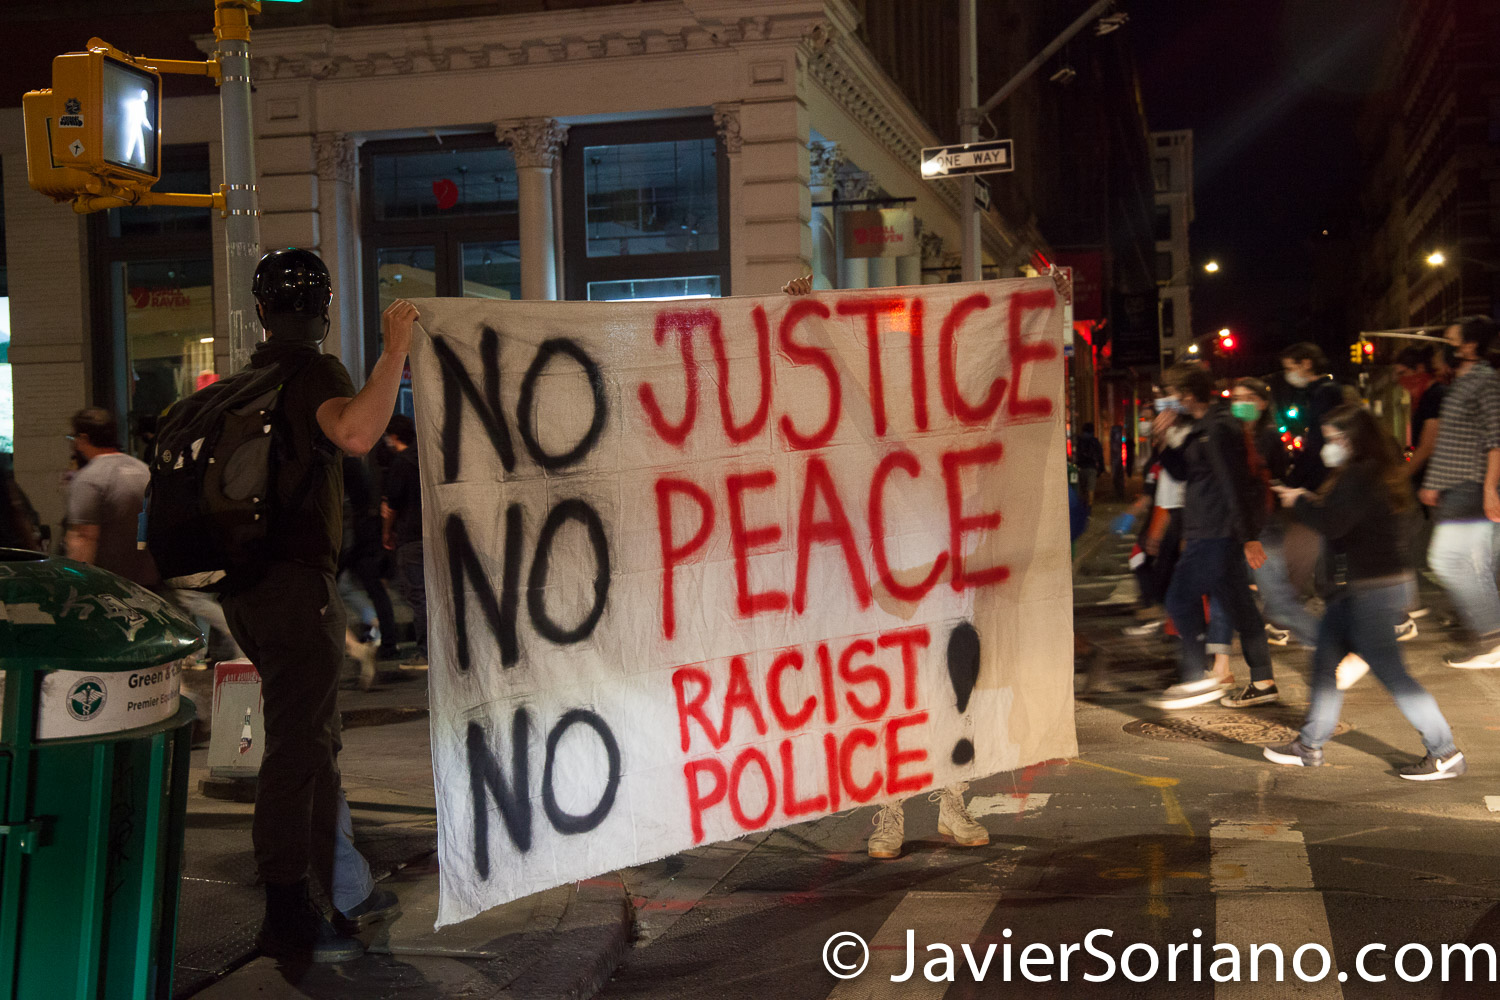 """Sunday, May 31, 2020. New York City - March from Barclays Center, Brooklyn to Manhattan to demand justice for George Floyd, to support Black Lives Matter and to demand police accountability. Protesters from Brooklyn walked across the Manhattan Bridge in a fourth day of consecutive protests in """"The Capital of the World."""" The sign says, """"NO JUSTICE, NO PEACE. NO RACIST POLICE!"""". Photo by Javier Soriano/www.JavierSoriano.com"""